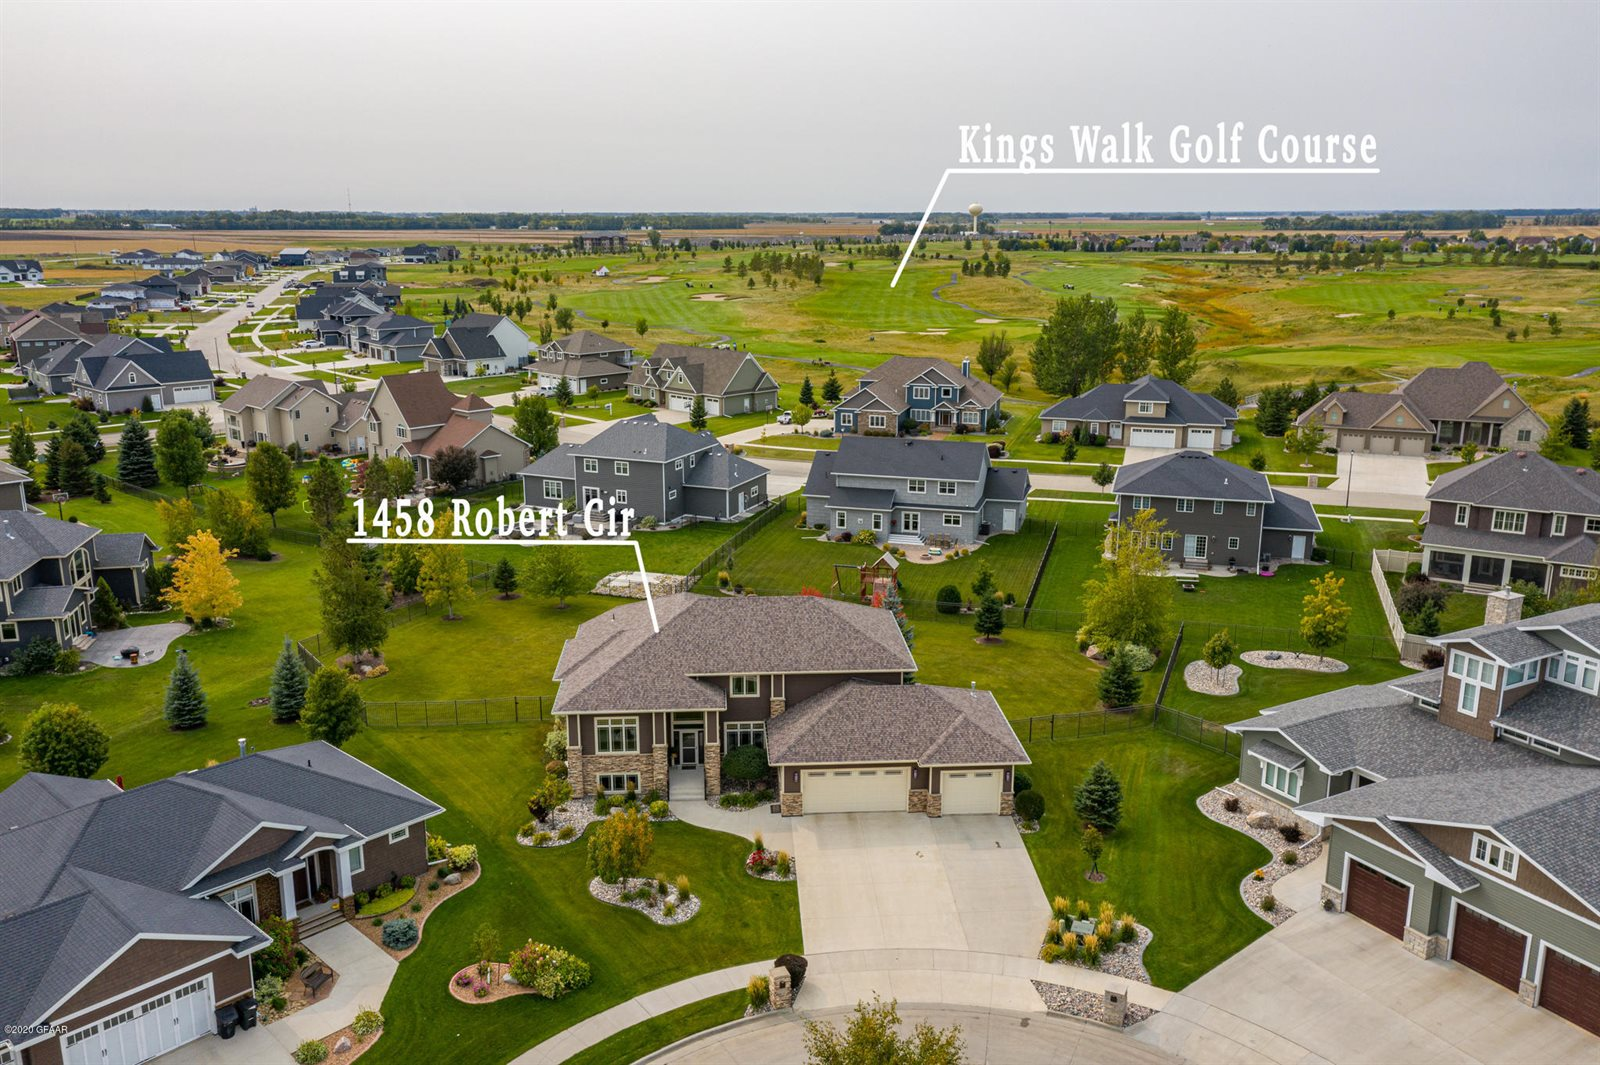 1458 Robert Cir, Grand Forks, ND 58201